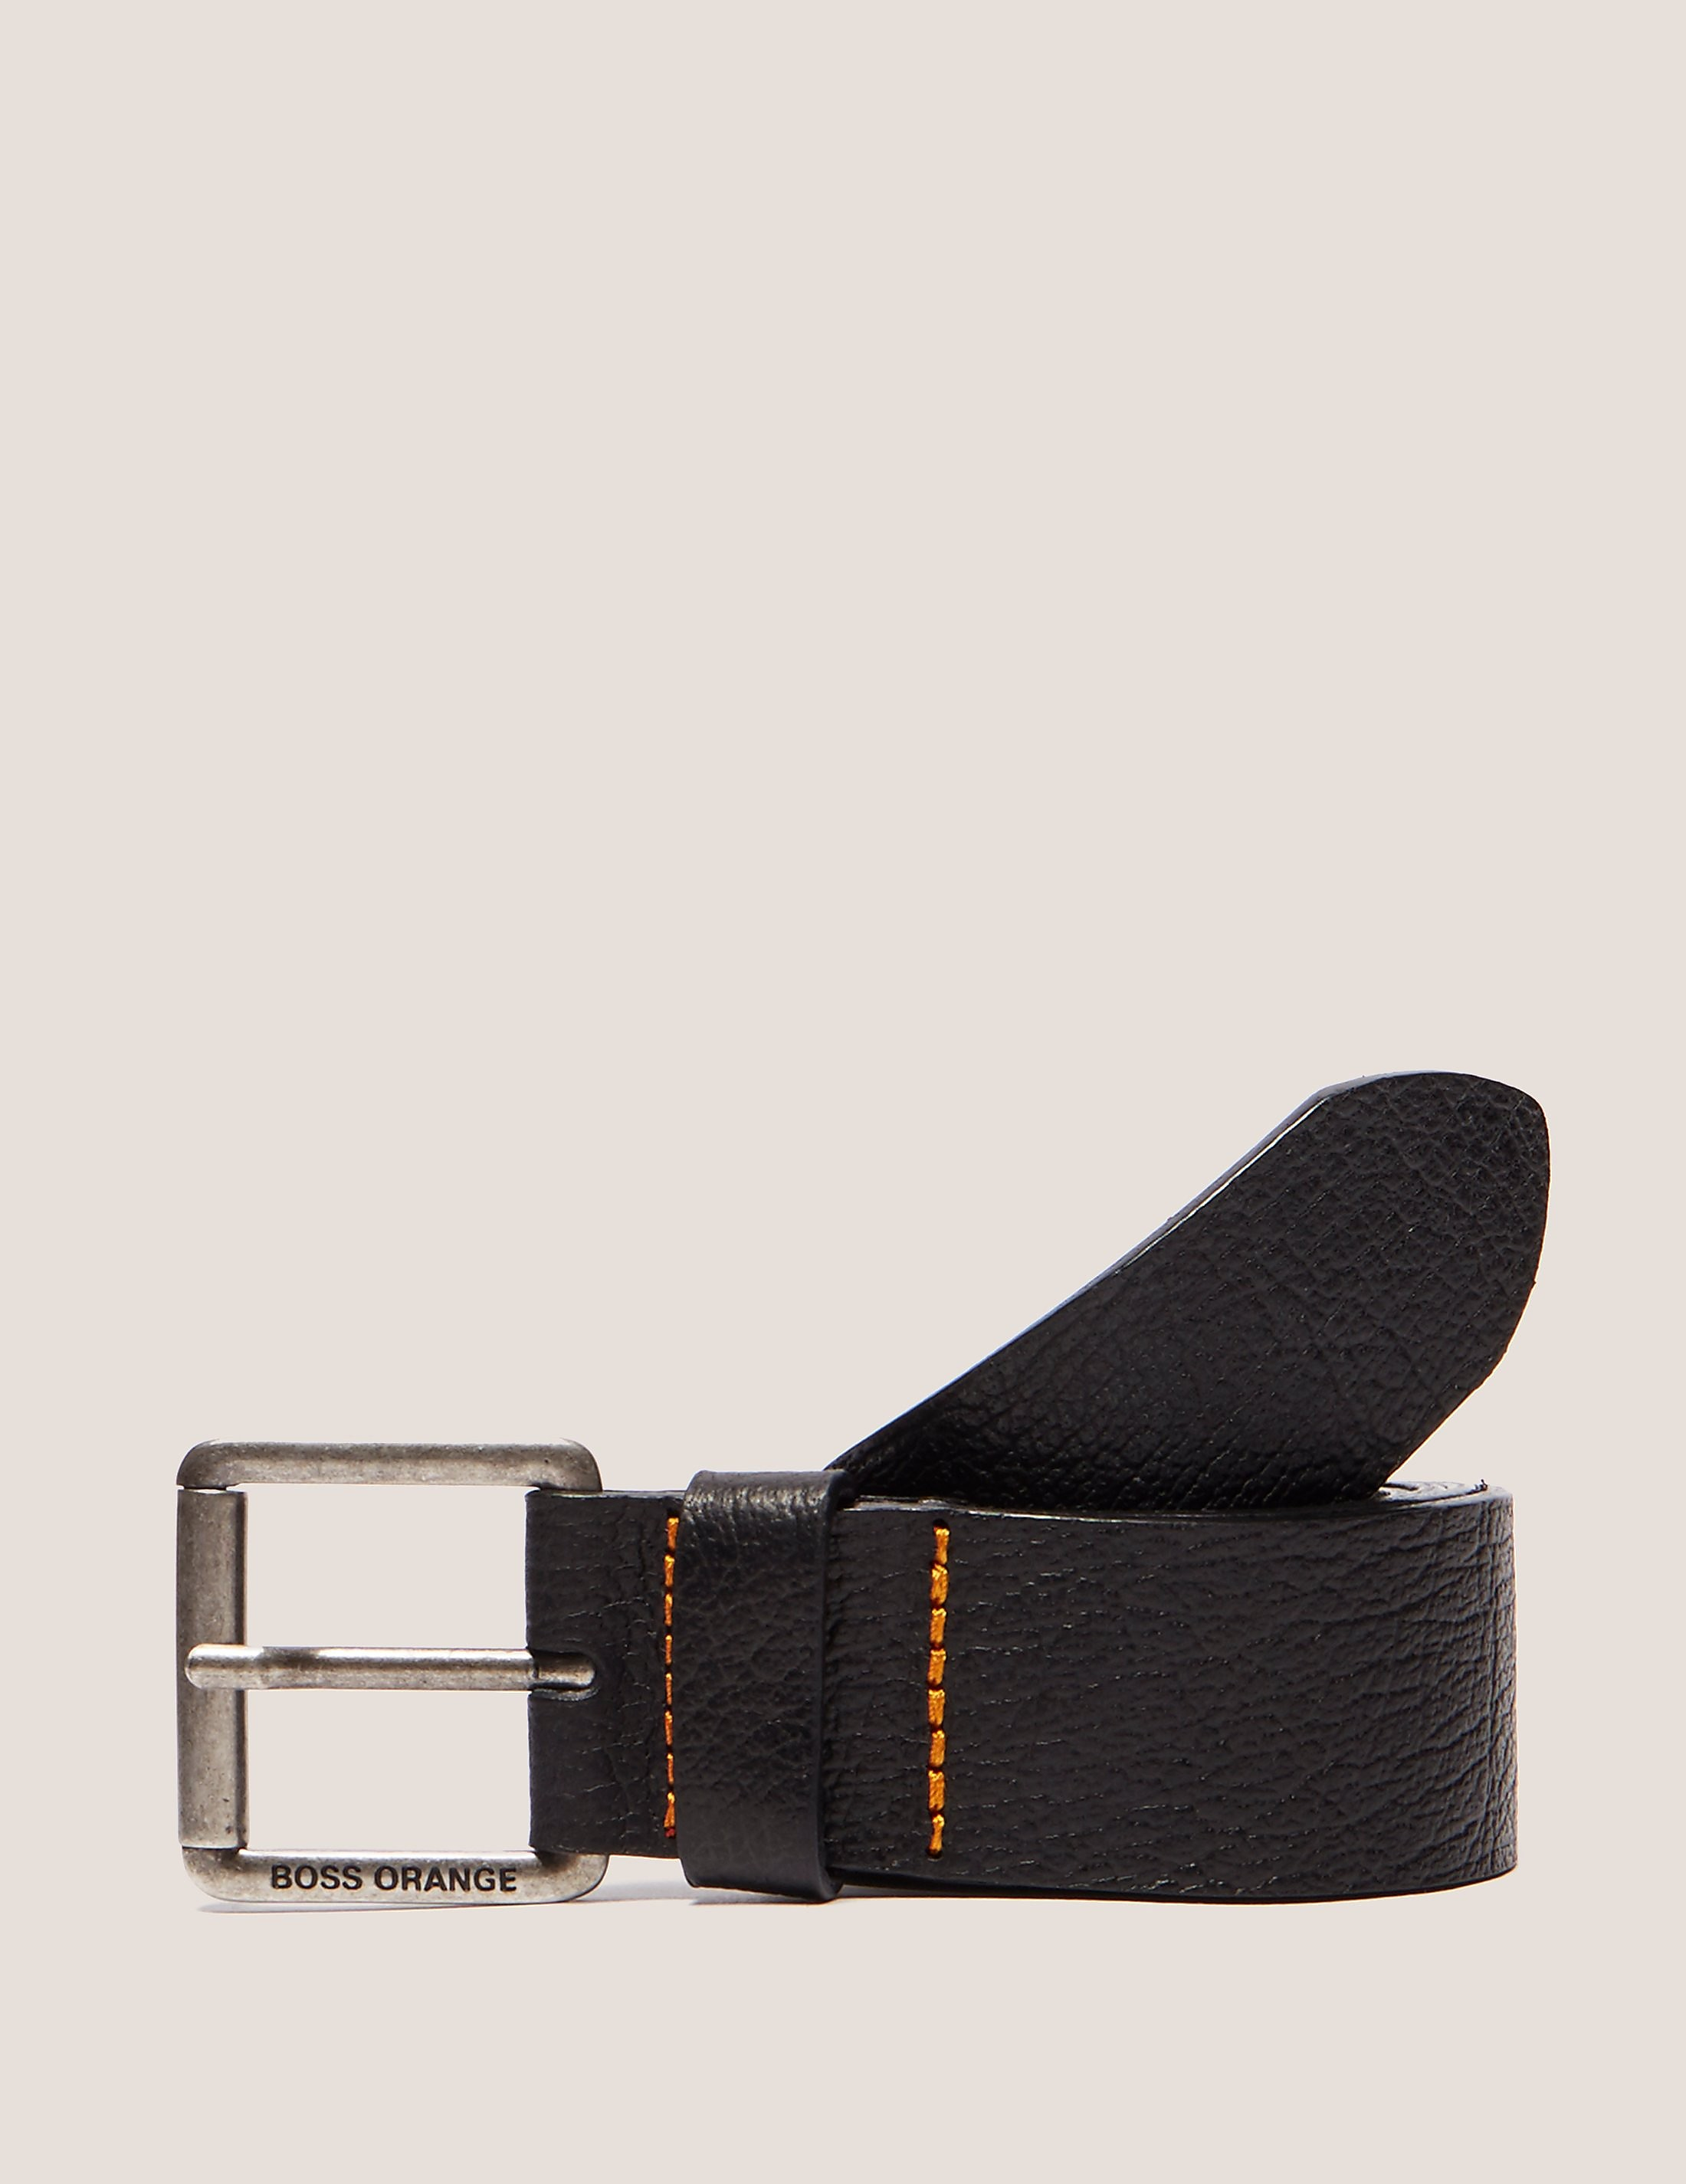 BOSS Orange Leather Belt